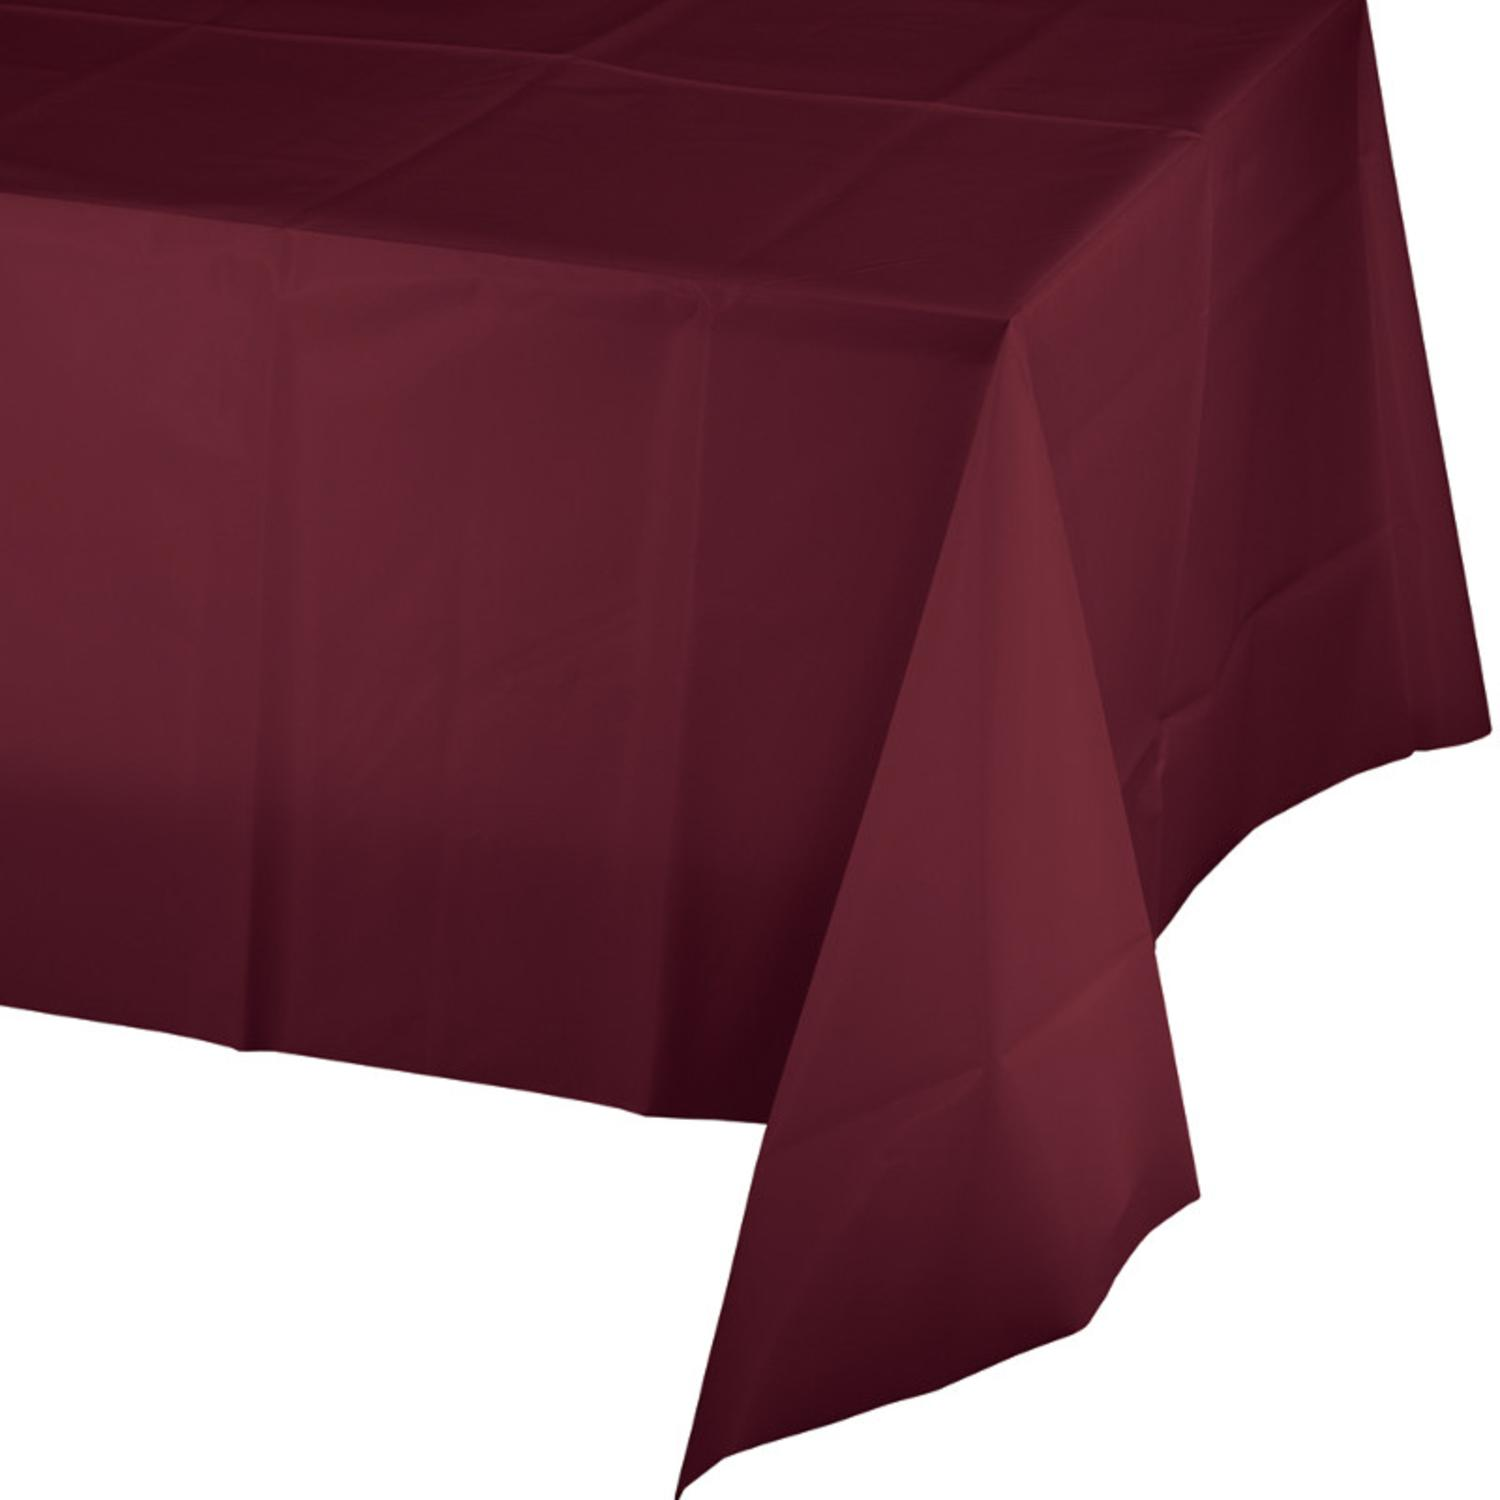 Club Pack of 12 Burgundy Disposable Plastic Banquet Party Table Covers 108